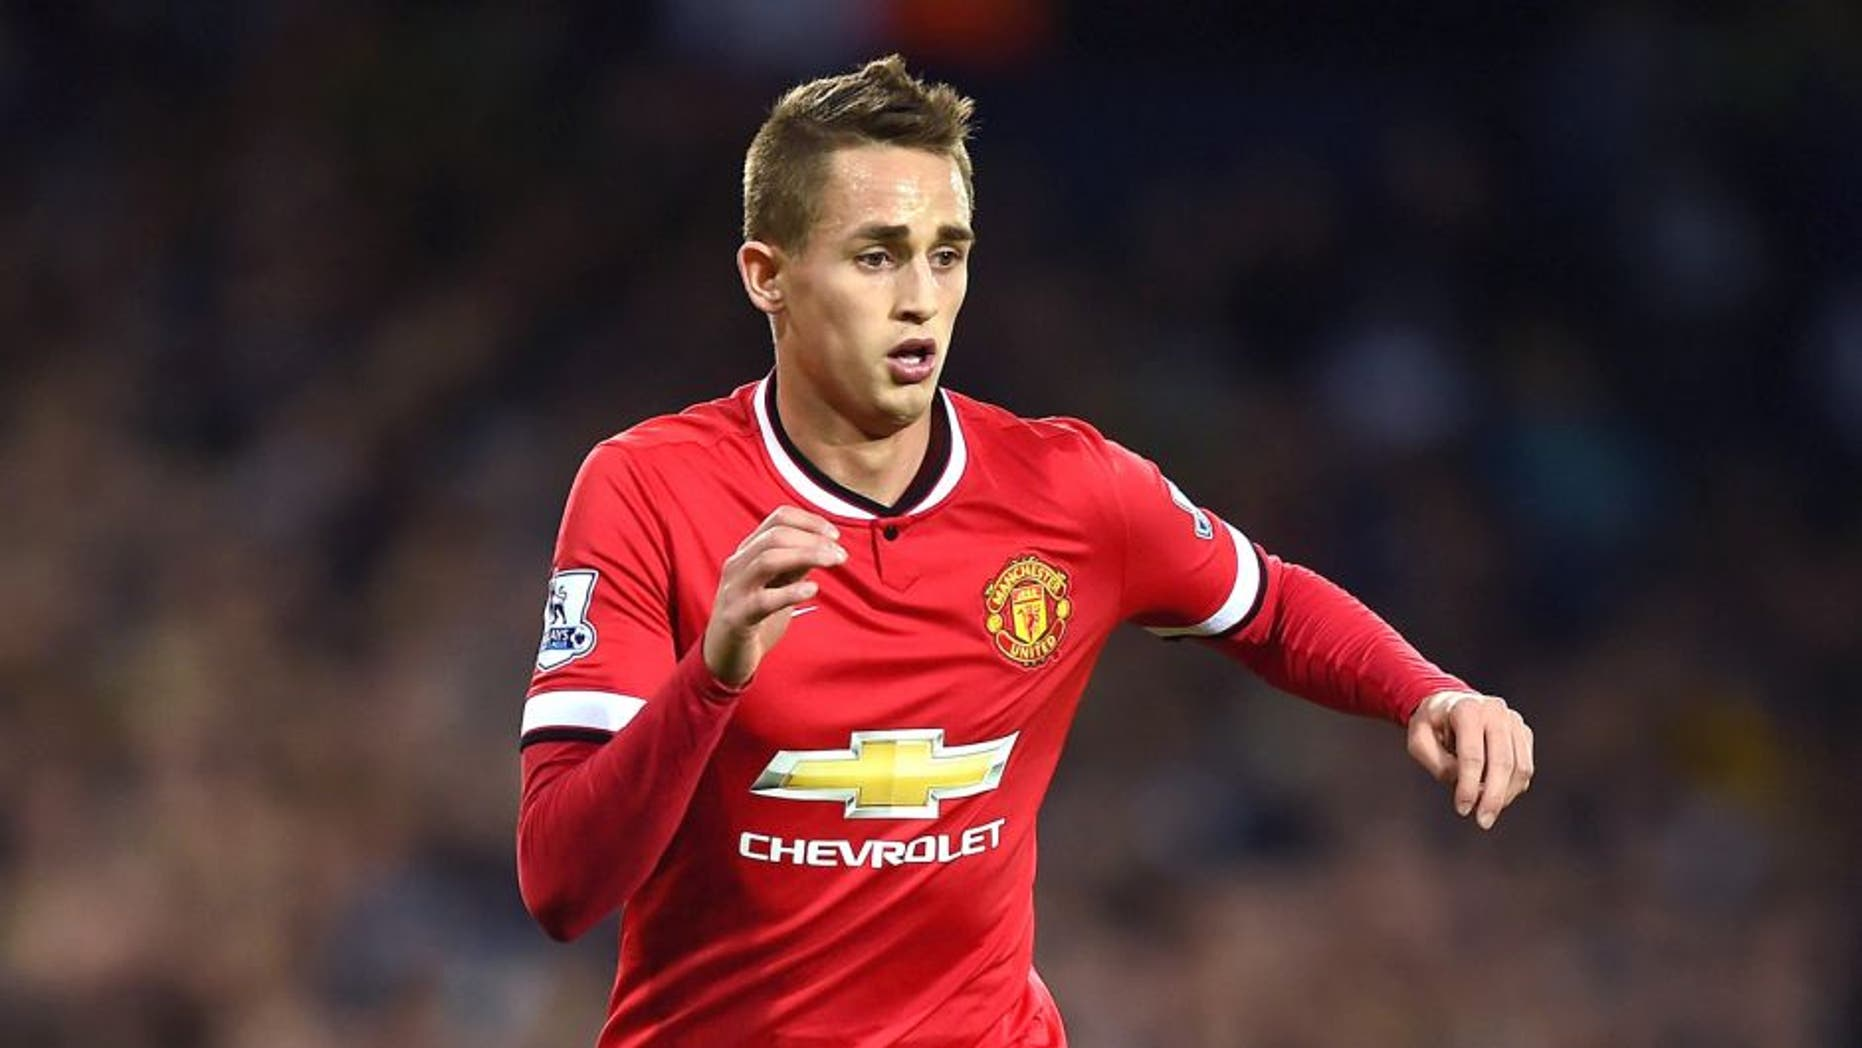 WEST BROMWICH, ENGLAND - OCTOBER 20: Adnan Januzaj of Manchester United in action during the Barclays Premier League match between West Bromwich Albion and Manchester United at The Hawthorns on October 20, 2014 in West Bromwich, England. (Photo by Laurence Griffiths/Getty Images)